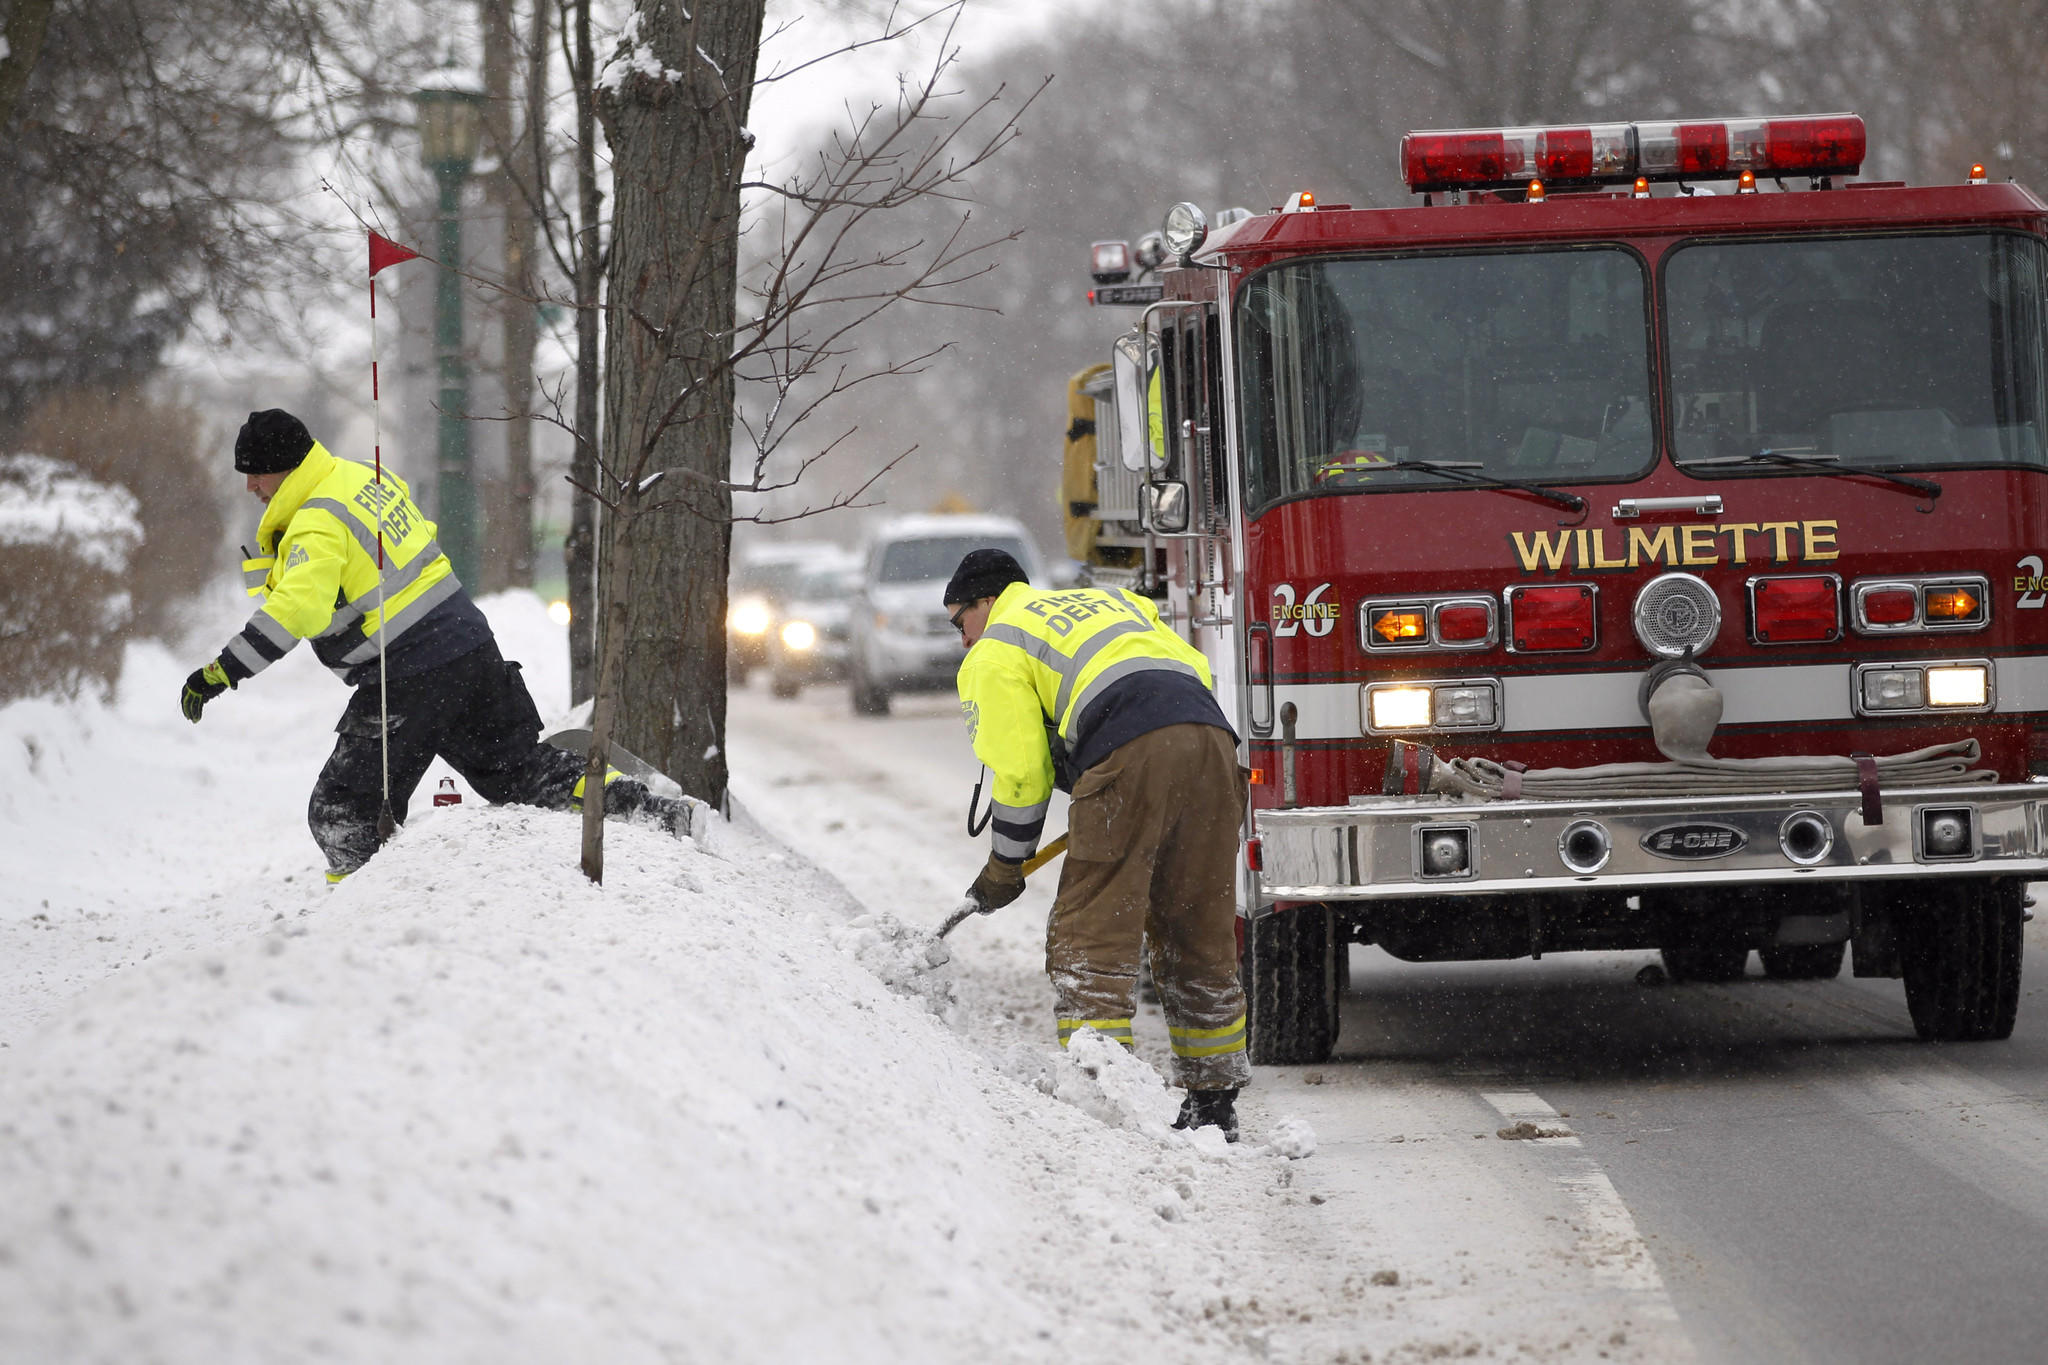 Wilmette firefighters shovel snow to clear fire hydrants Feb. 5 along Sheridan Road north of Isabella Street in Wilmette.